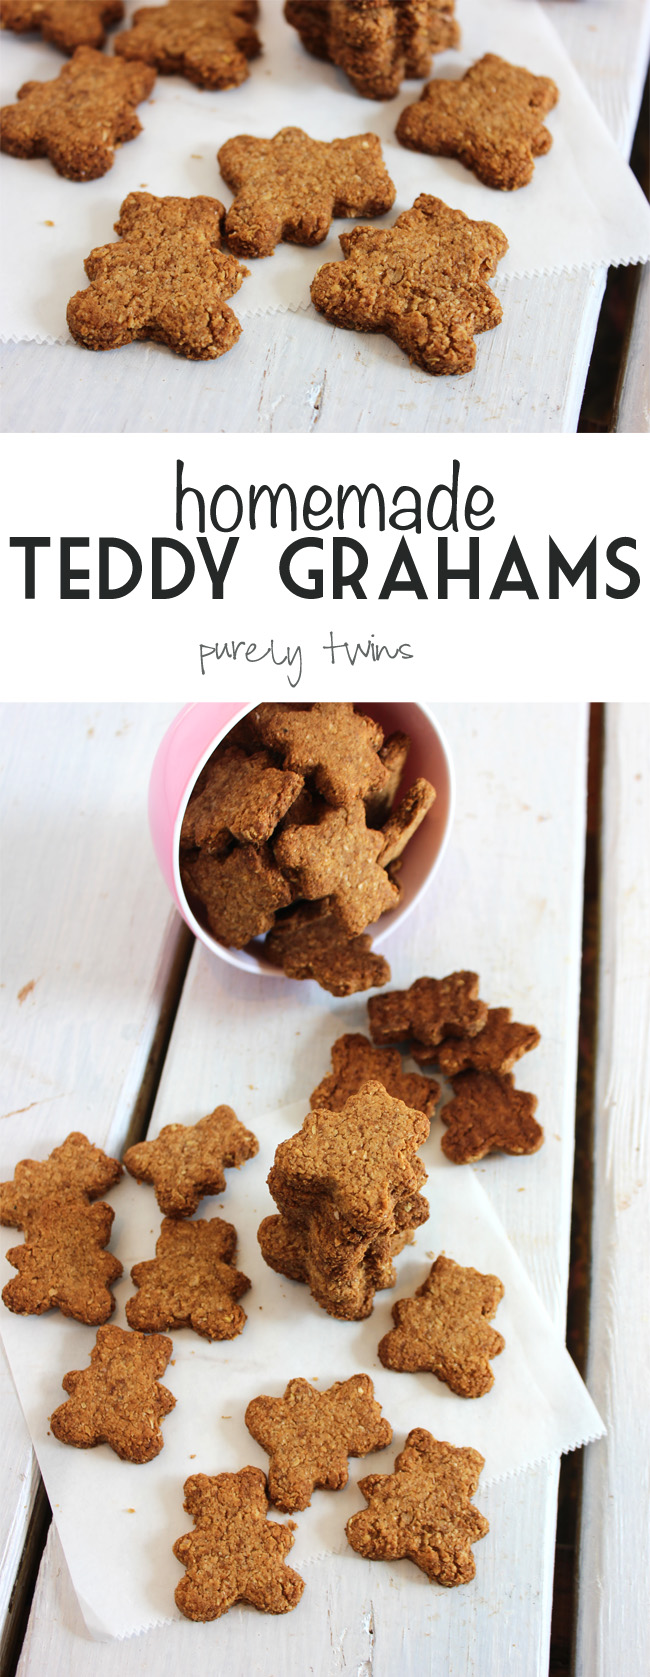 the-BEST-homemade-healthy-teddy-grahams-grain-free-gluten-free-vegan-purelytwins